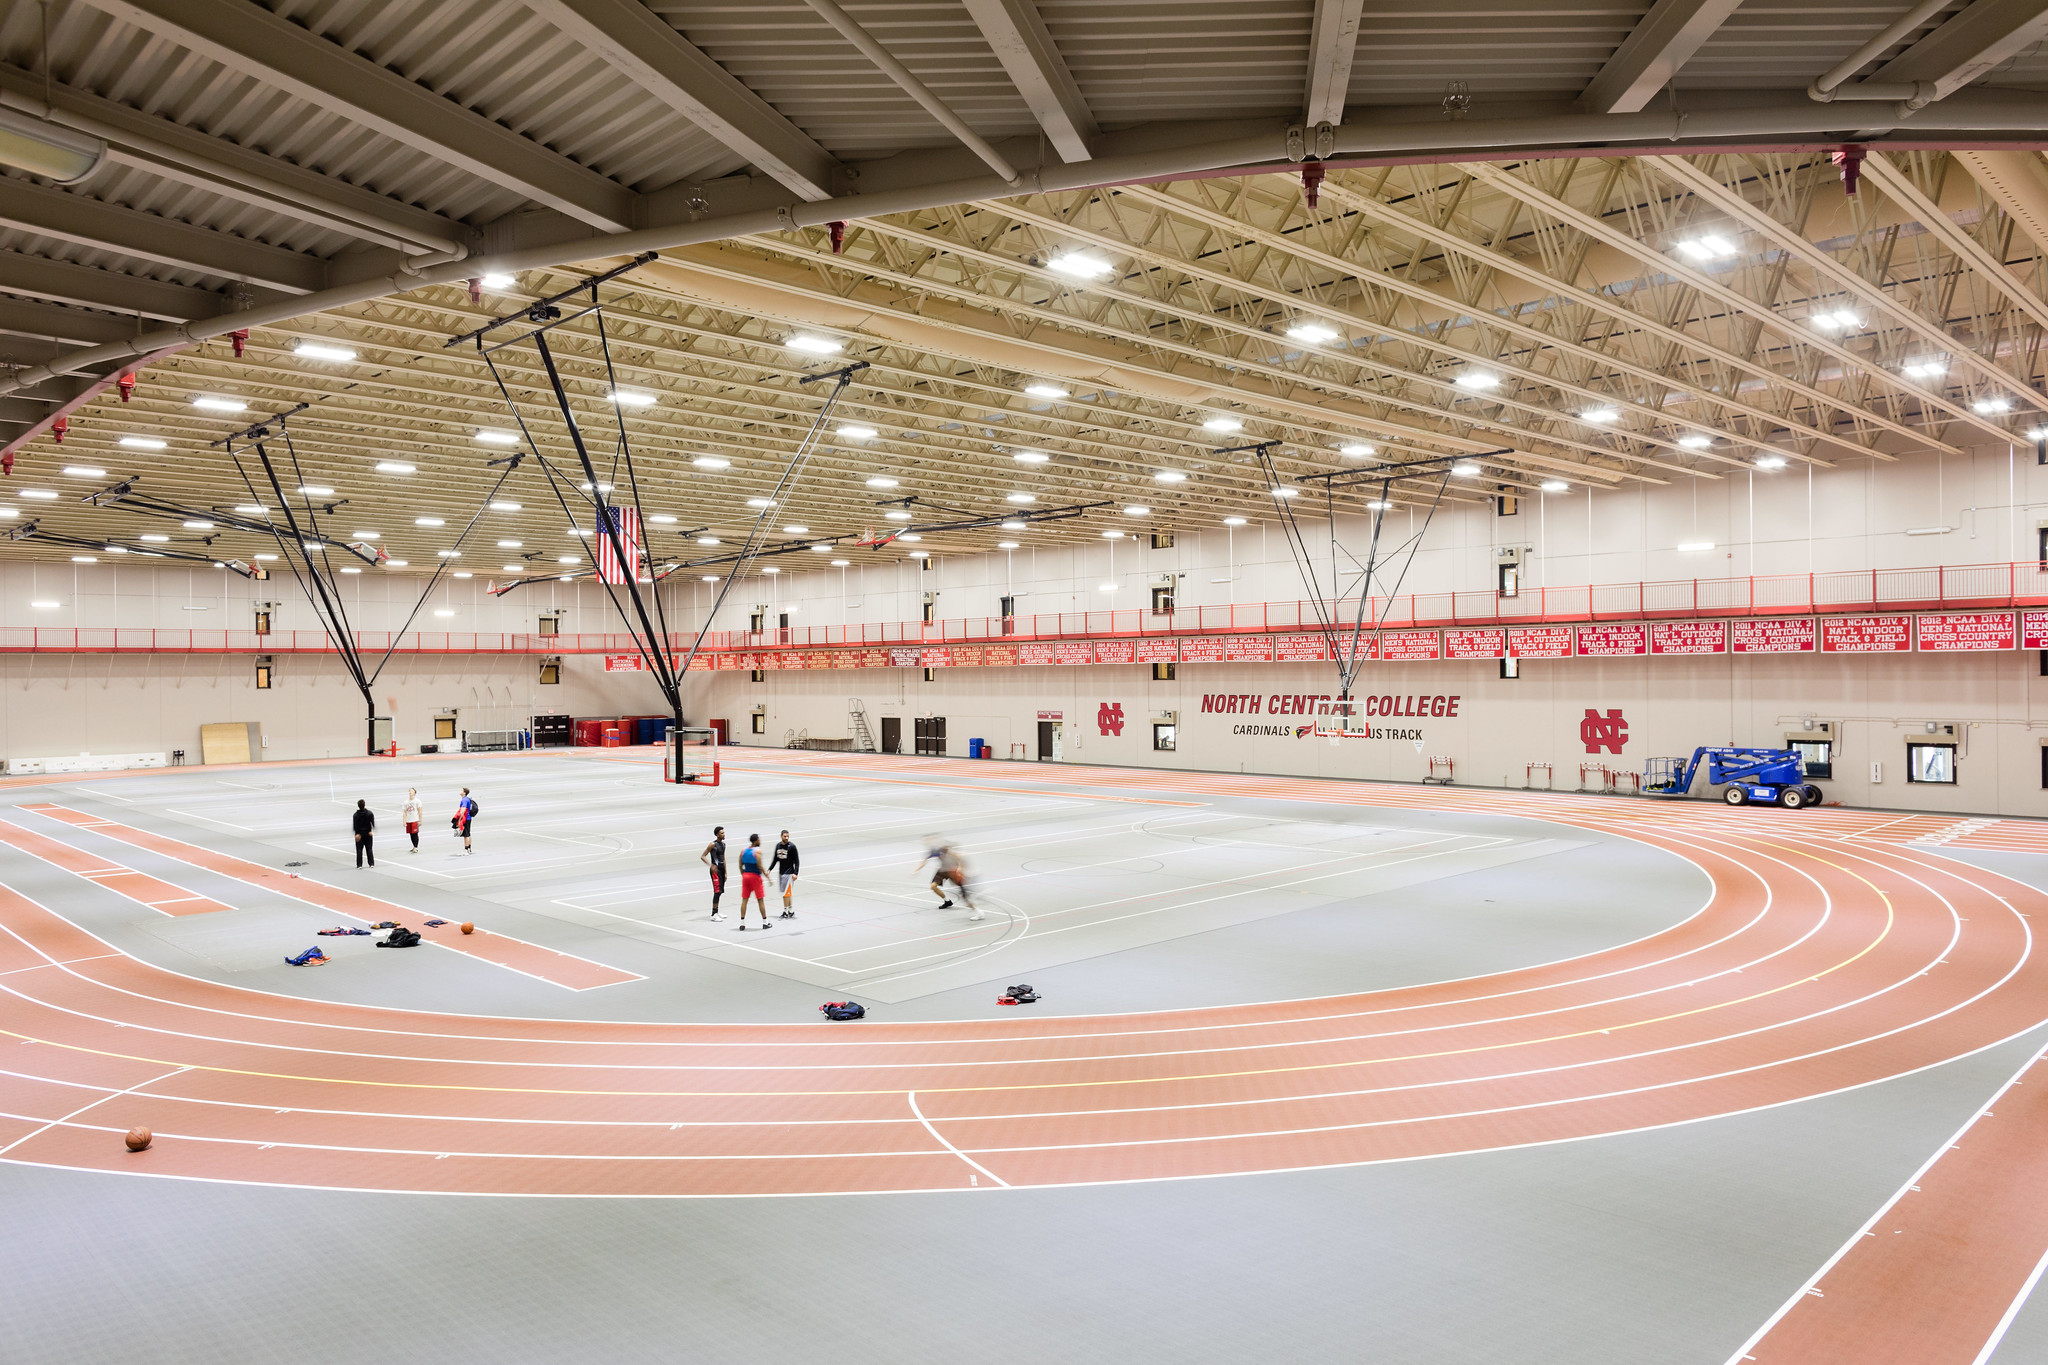 Res/Rec arena at North Central College